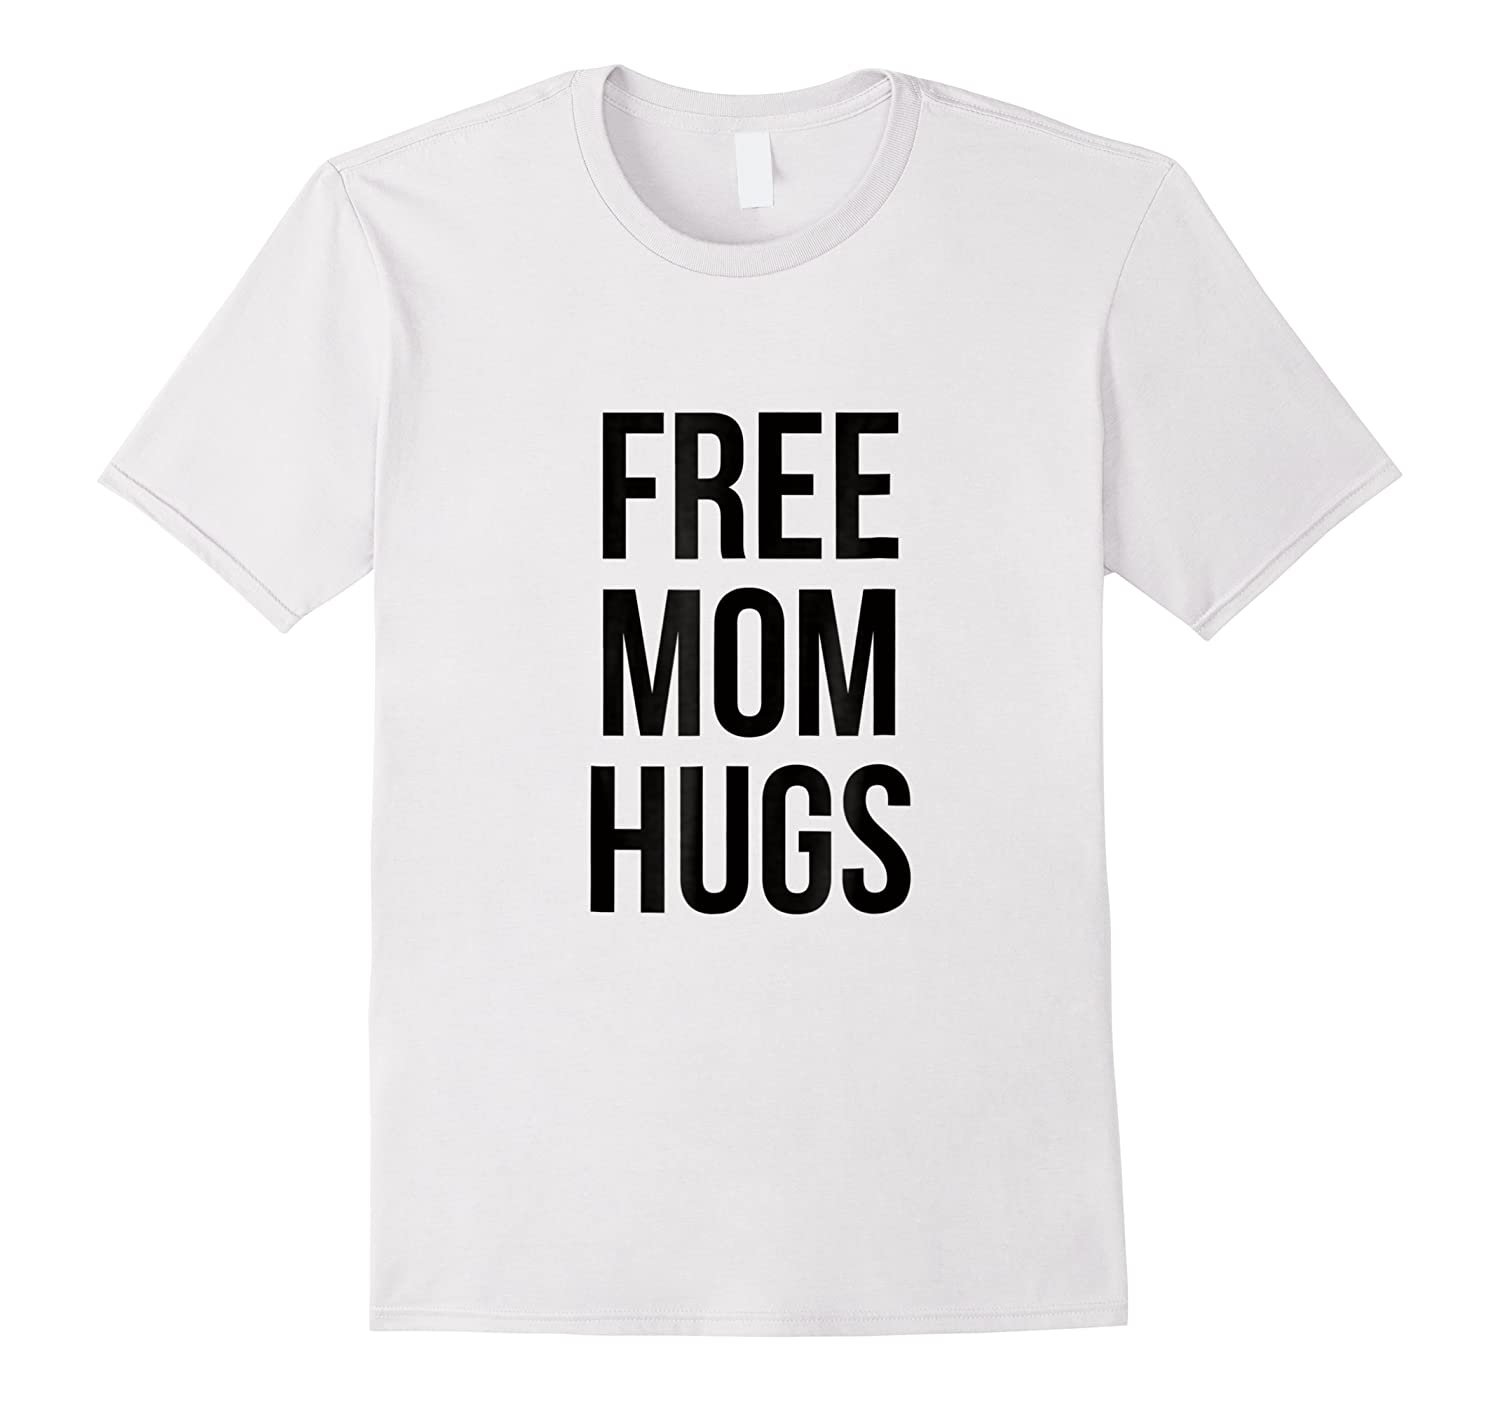 Free Mom Hugs T Shirt For Sharing The Love